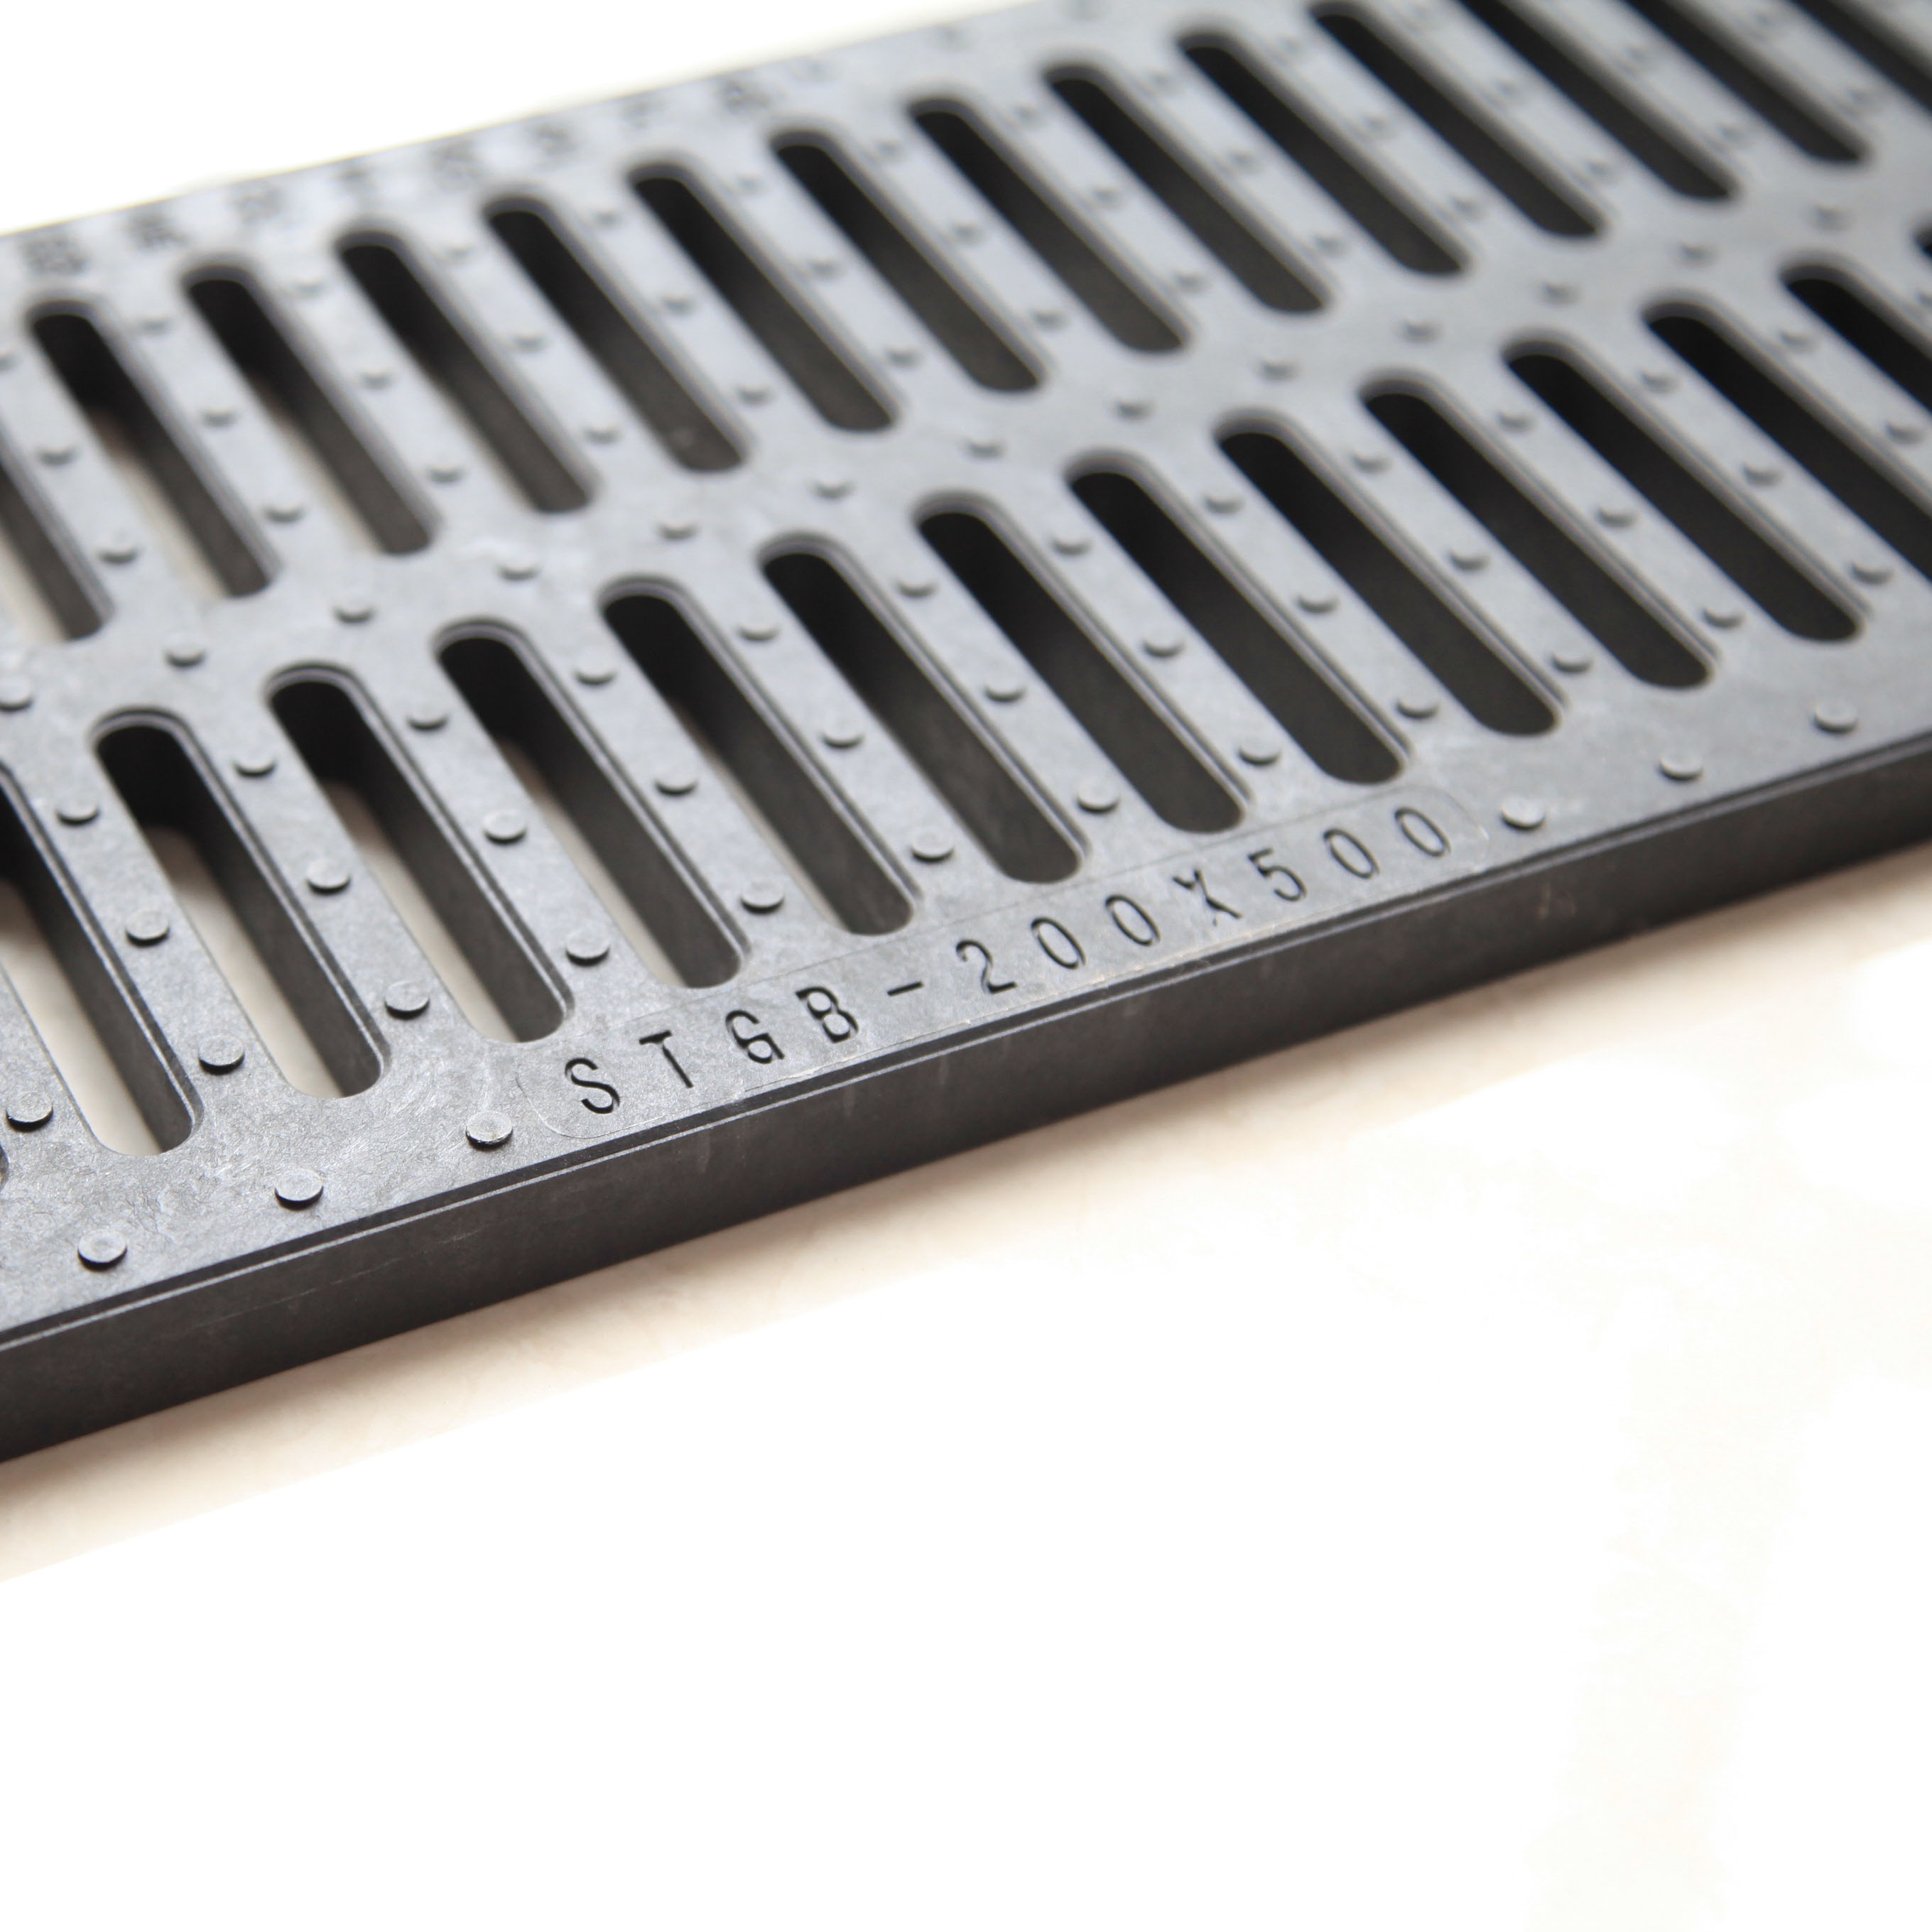 Nắp cống Plastic drainage trench cover sewer cover covers the Kitchen Restaurant School ditch cover